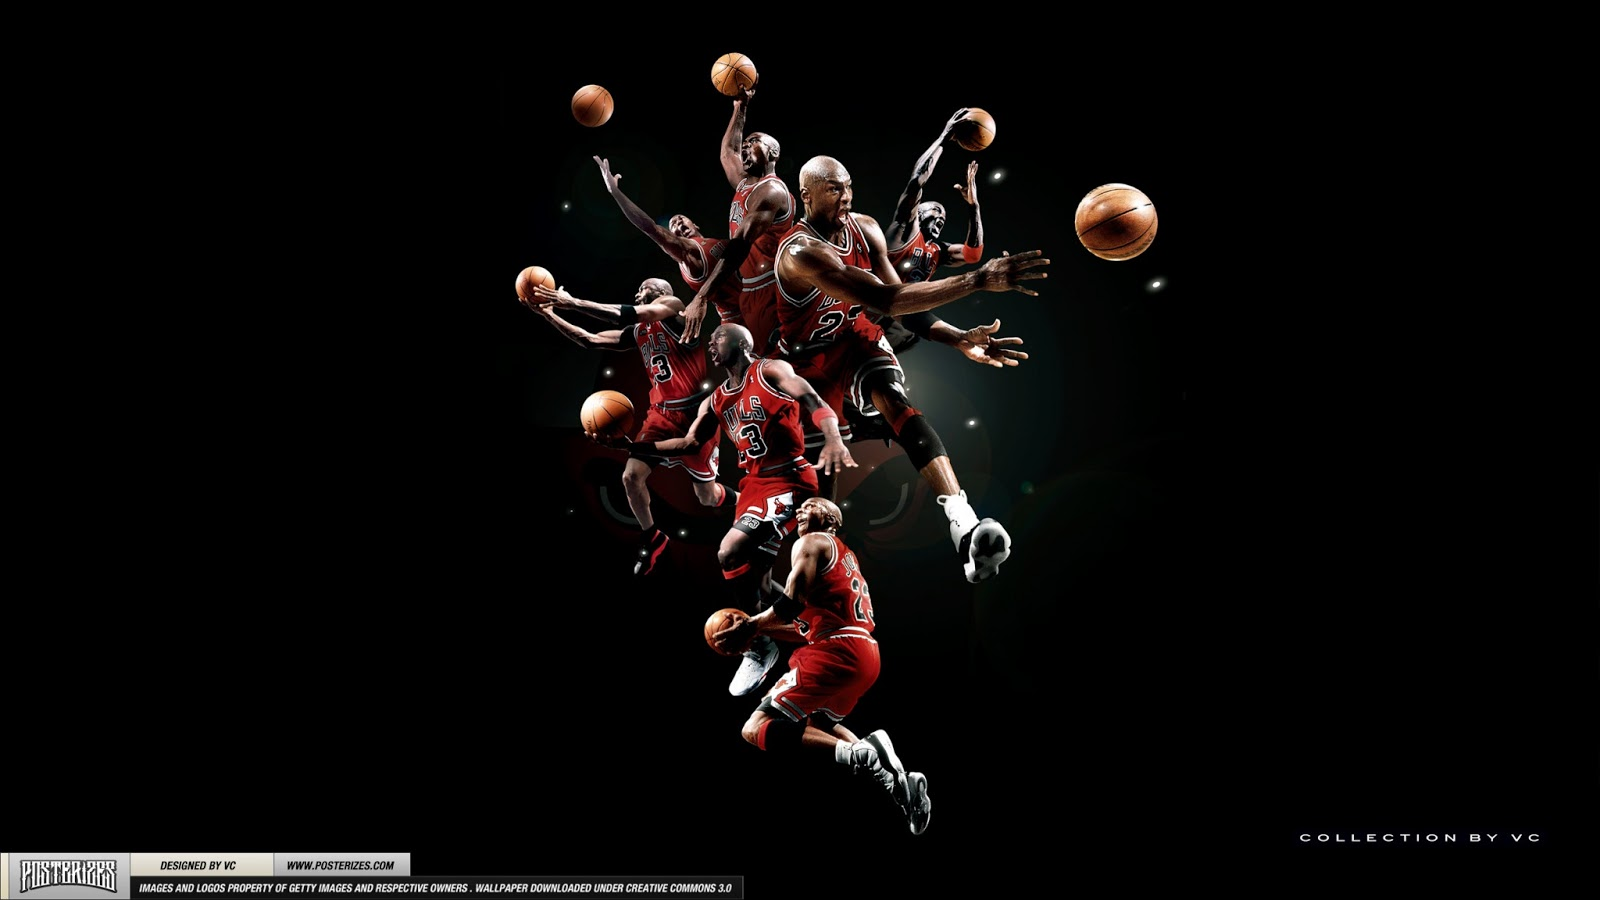 Cool Jordan Wallpapers Wallpapers Background 1600x900